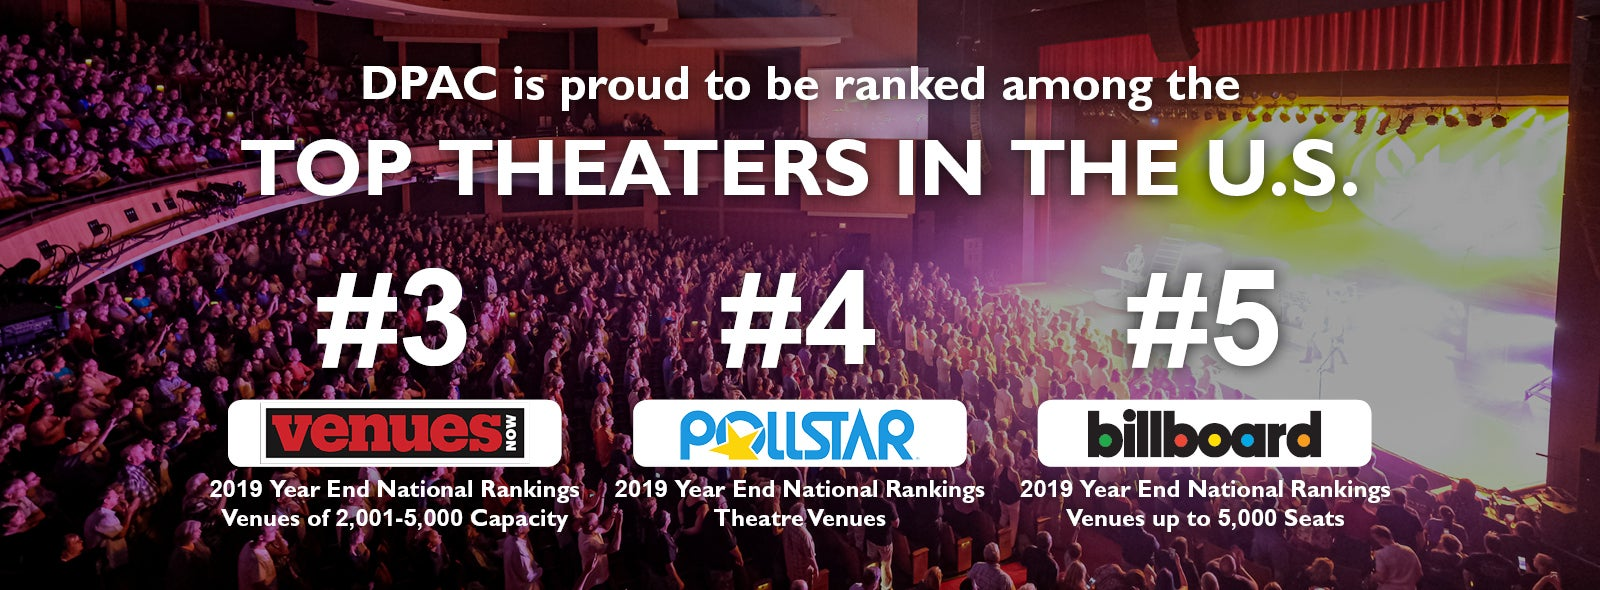 Ranked in Top Theaters in the U.S.